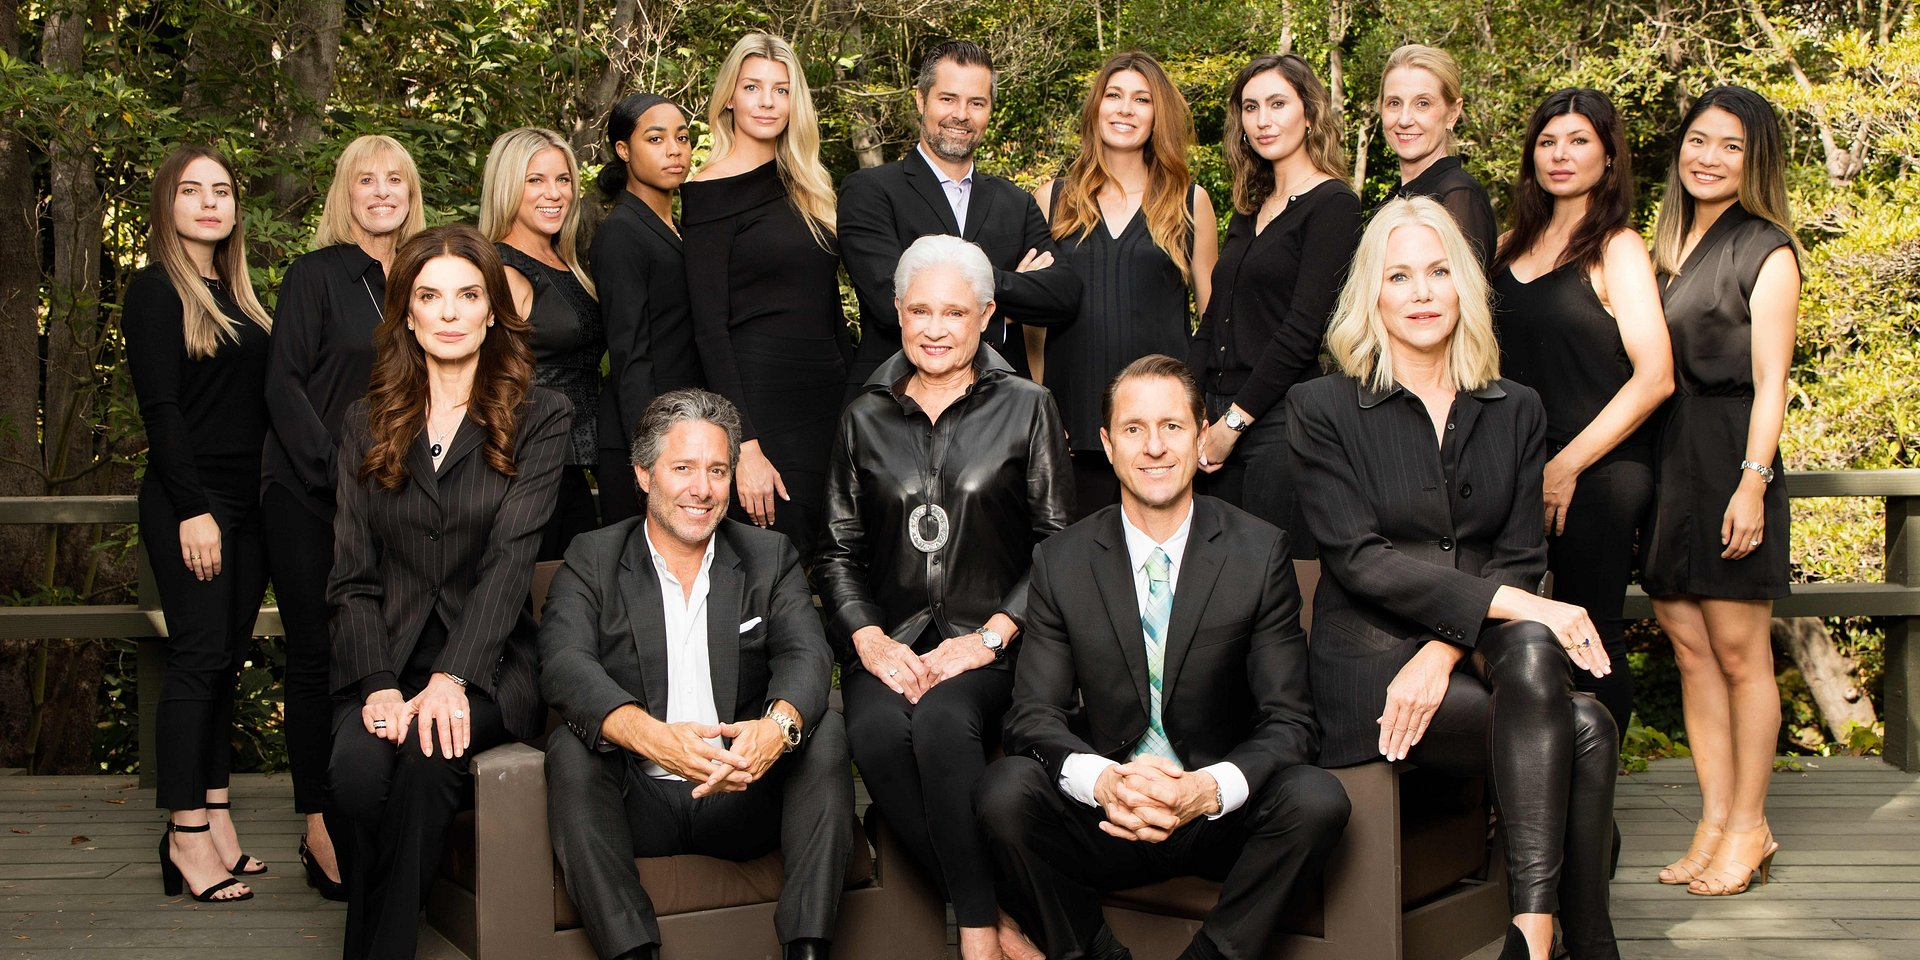 THE JOYCE REY TEAM RANKED IN TOP 10 LARGE TEAMS OF ALL COLDWELL BANKER® NORTH AMERICA BASED ON GROSS COMMISSION INCOME FOR 2019